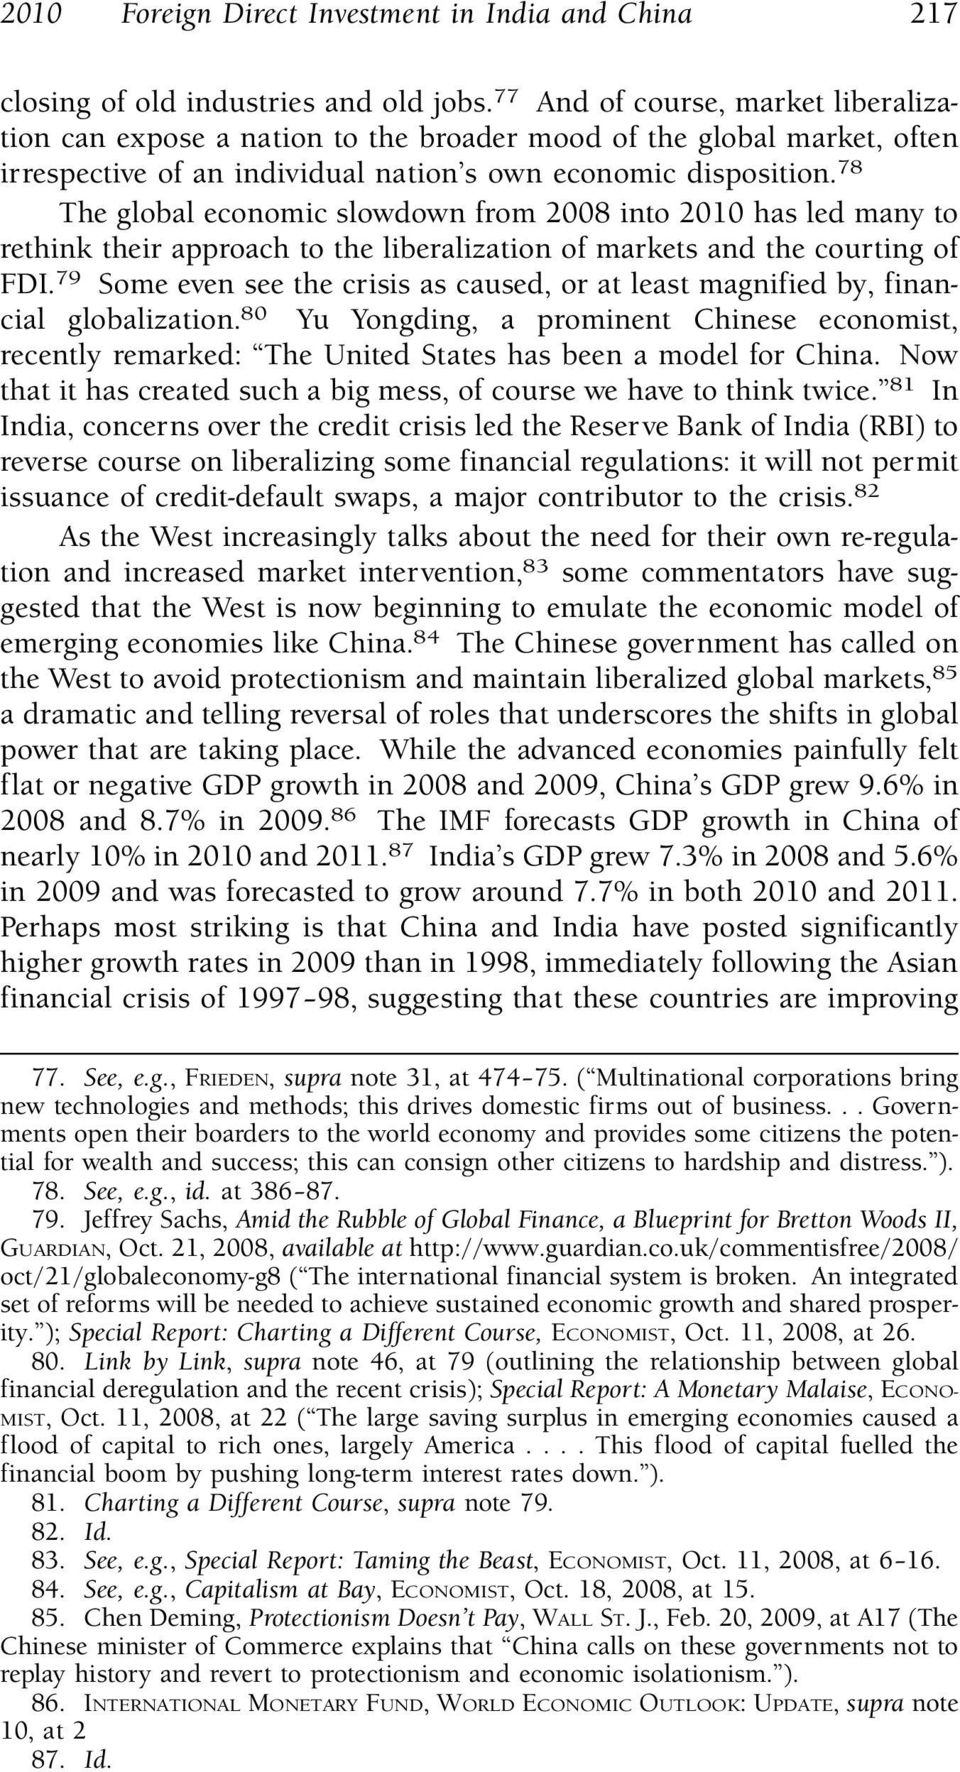 78 The global economic slowdown from 2008 into 2010 has led many to rethink their approach to the liberalization of markets and the courting of FDI.